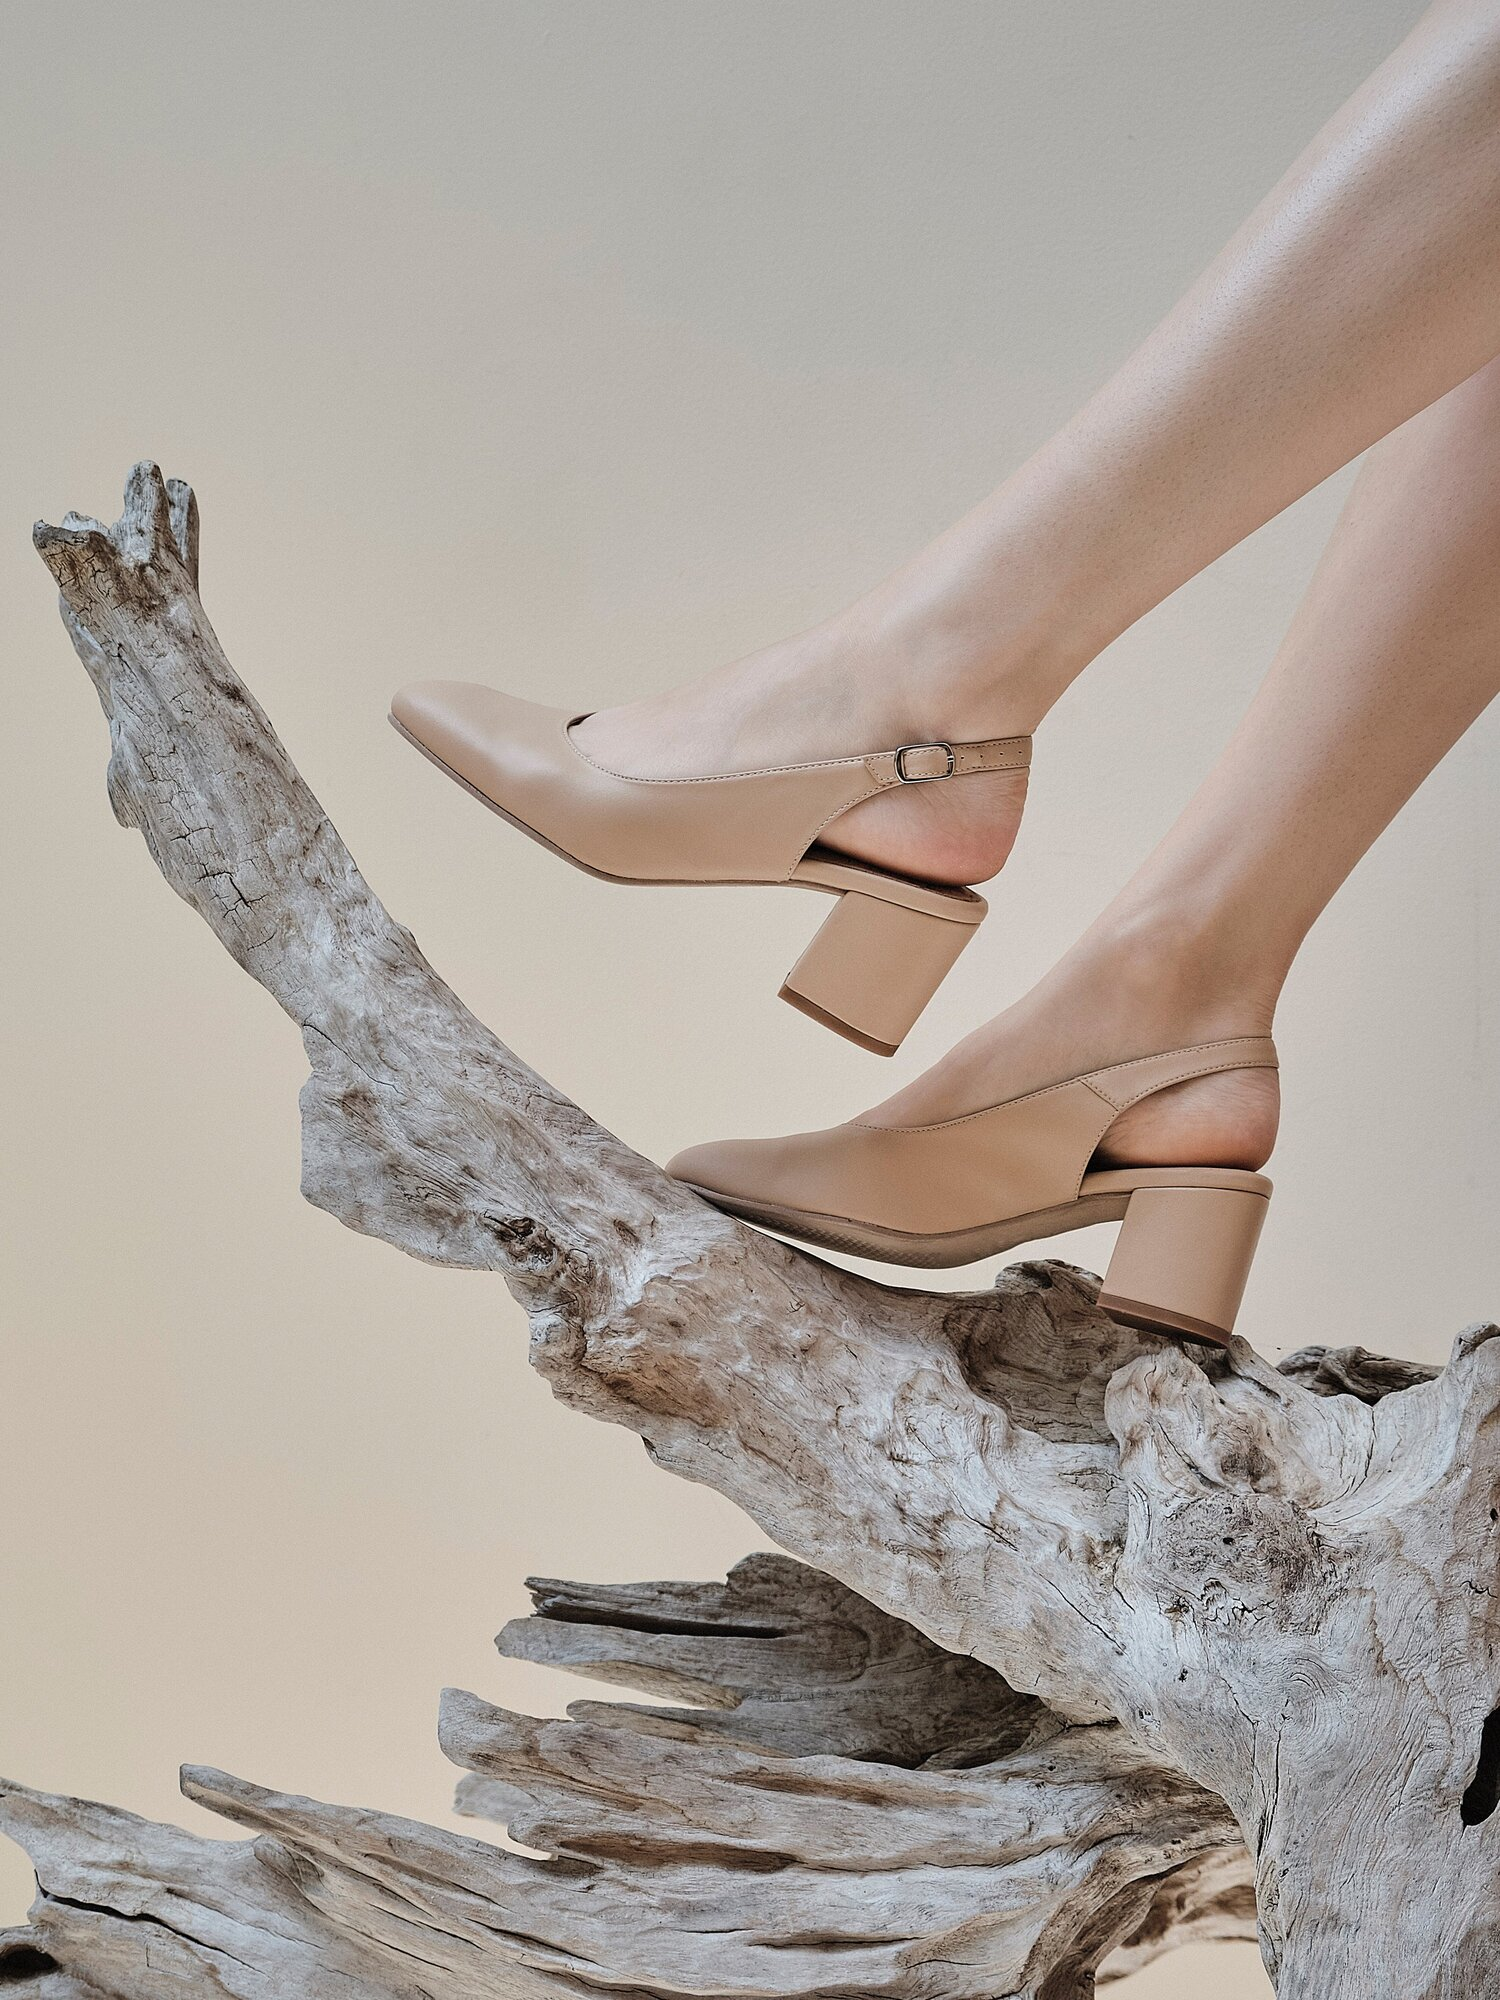 2910ba2b34d81 9 Vegan Shoe Brands That Are Stylish, Comfortable, & Cruelty-Free